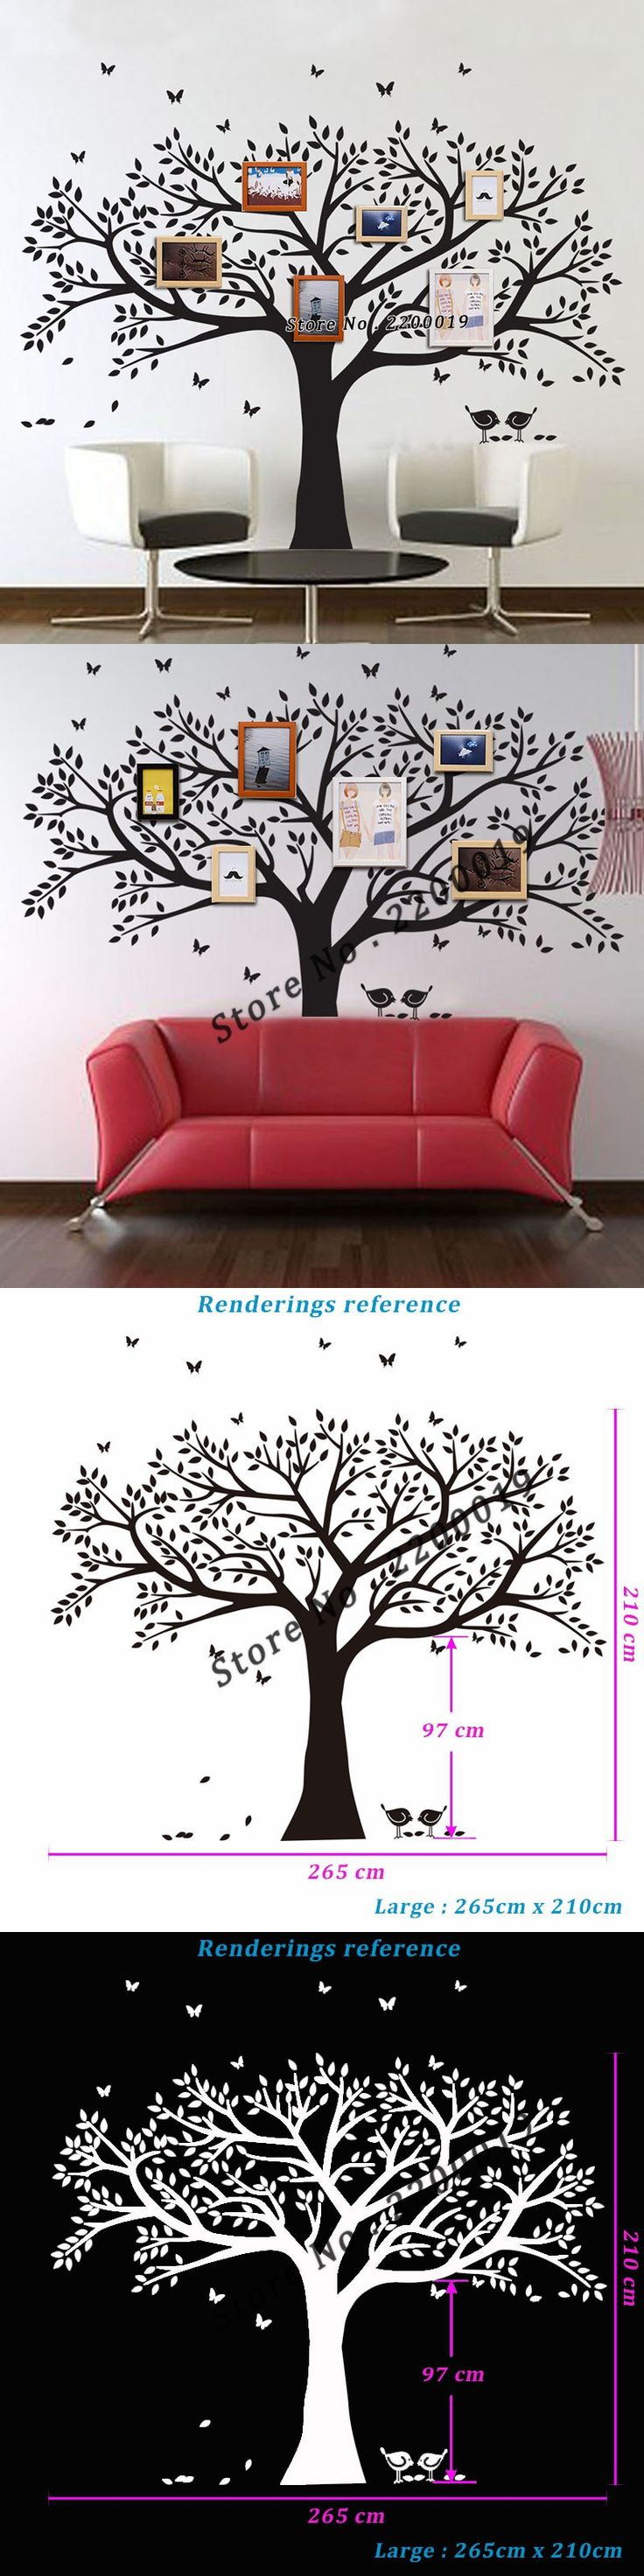 Oversized 265x210cm Family Tree Decal Extra Large Wall Stickers Home Decor Living Room Wall Art Decor Warm Home Decoration $54.98